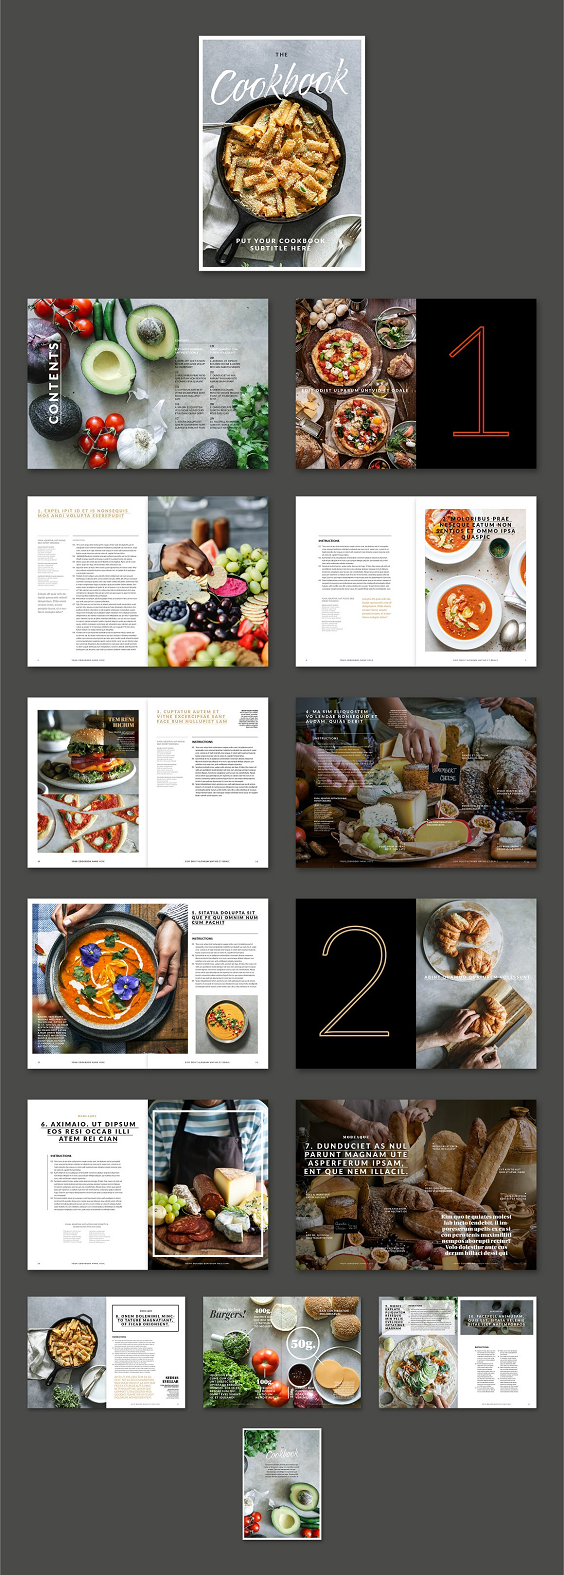 This cookbook / recipe book template is a premium designed book layout available to use in Adobe Indesign. The cookbook contains modern, and elegant layouts with well-crafted details like automatic page numbering, automatic table of contents, text pages and pages with captions. It includes paragraph/character styles for some titles, subtitles and texts. It contains placeholder boxes for easy image placement. The colors and fonts can be easily edited and the template is designed using free fonts from Adobe Fonts.